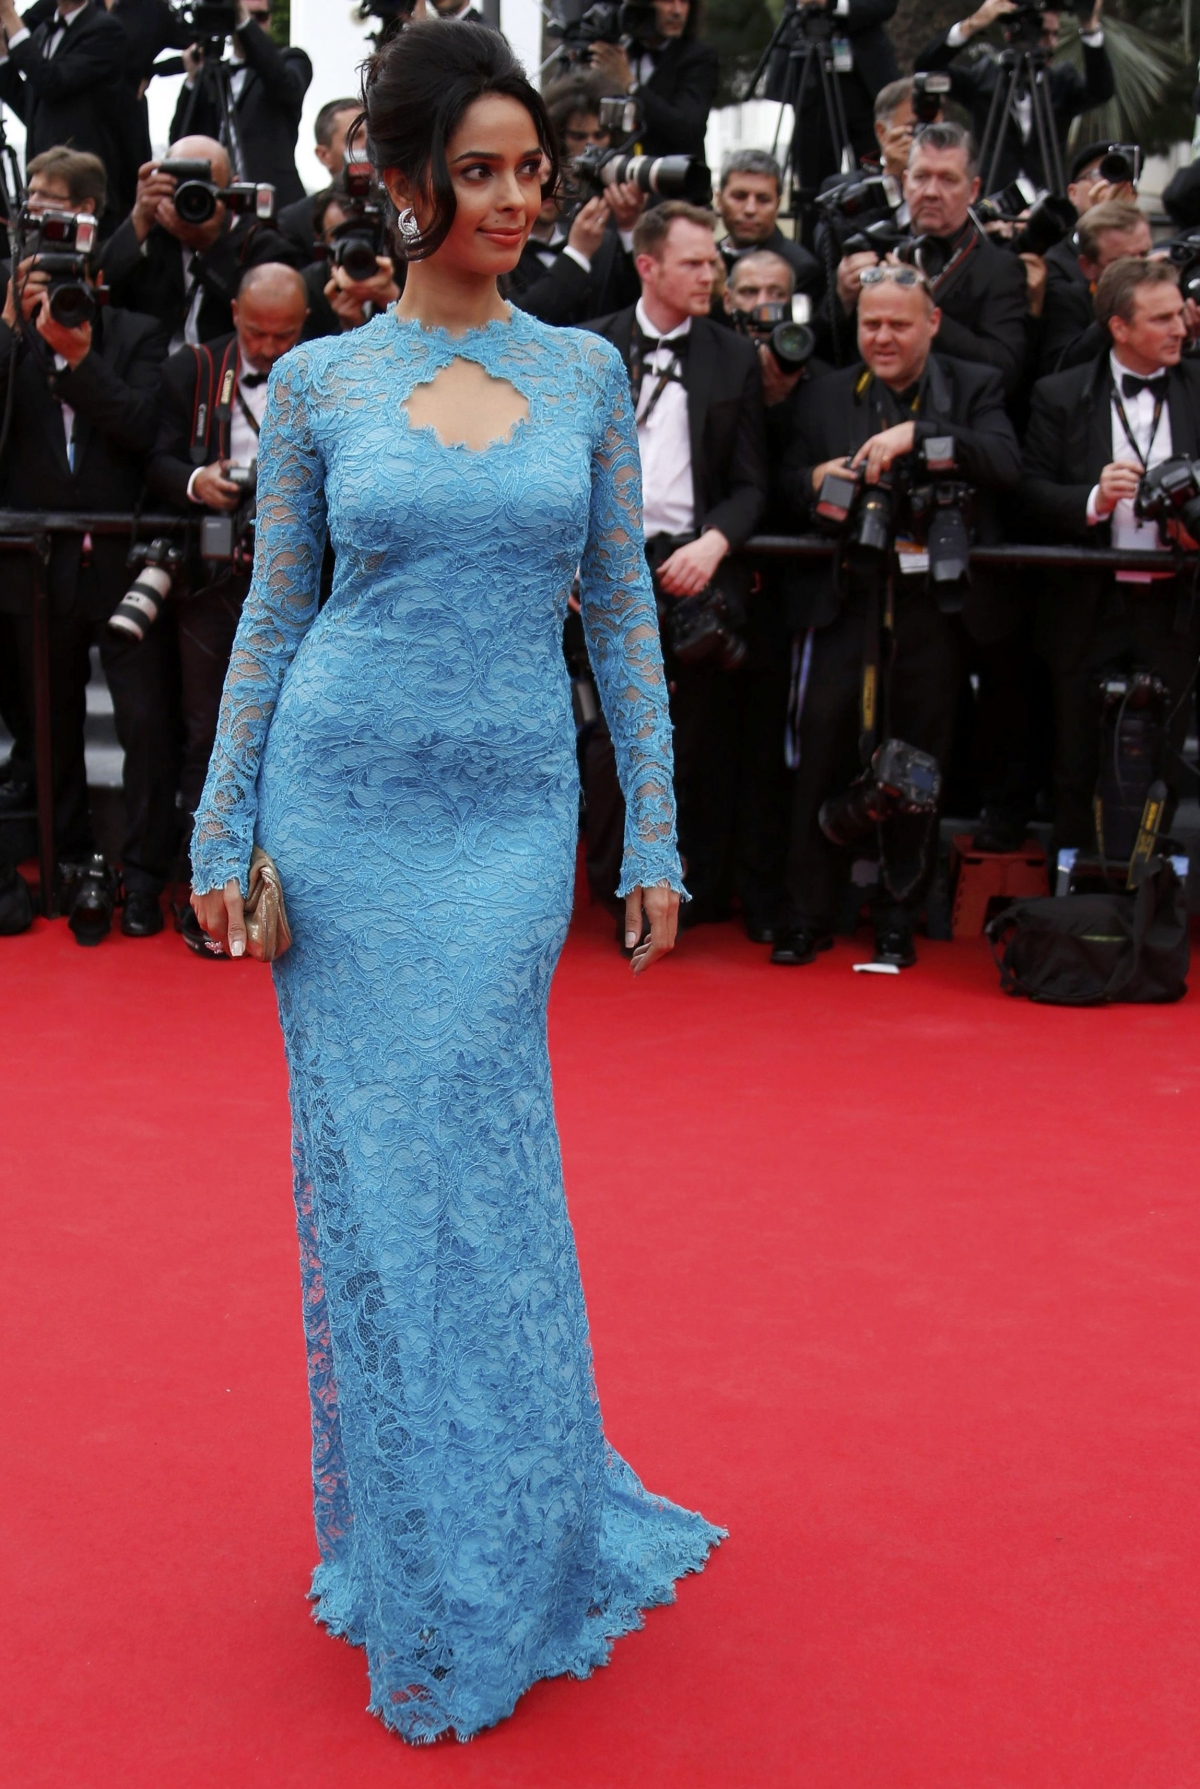 Cannes Film Festival 2015 Red Carpet Appearances Of